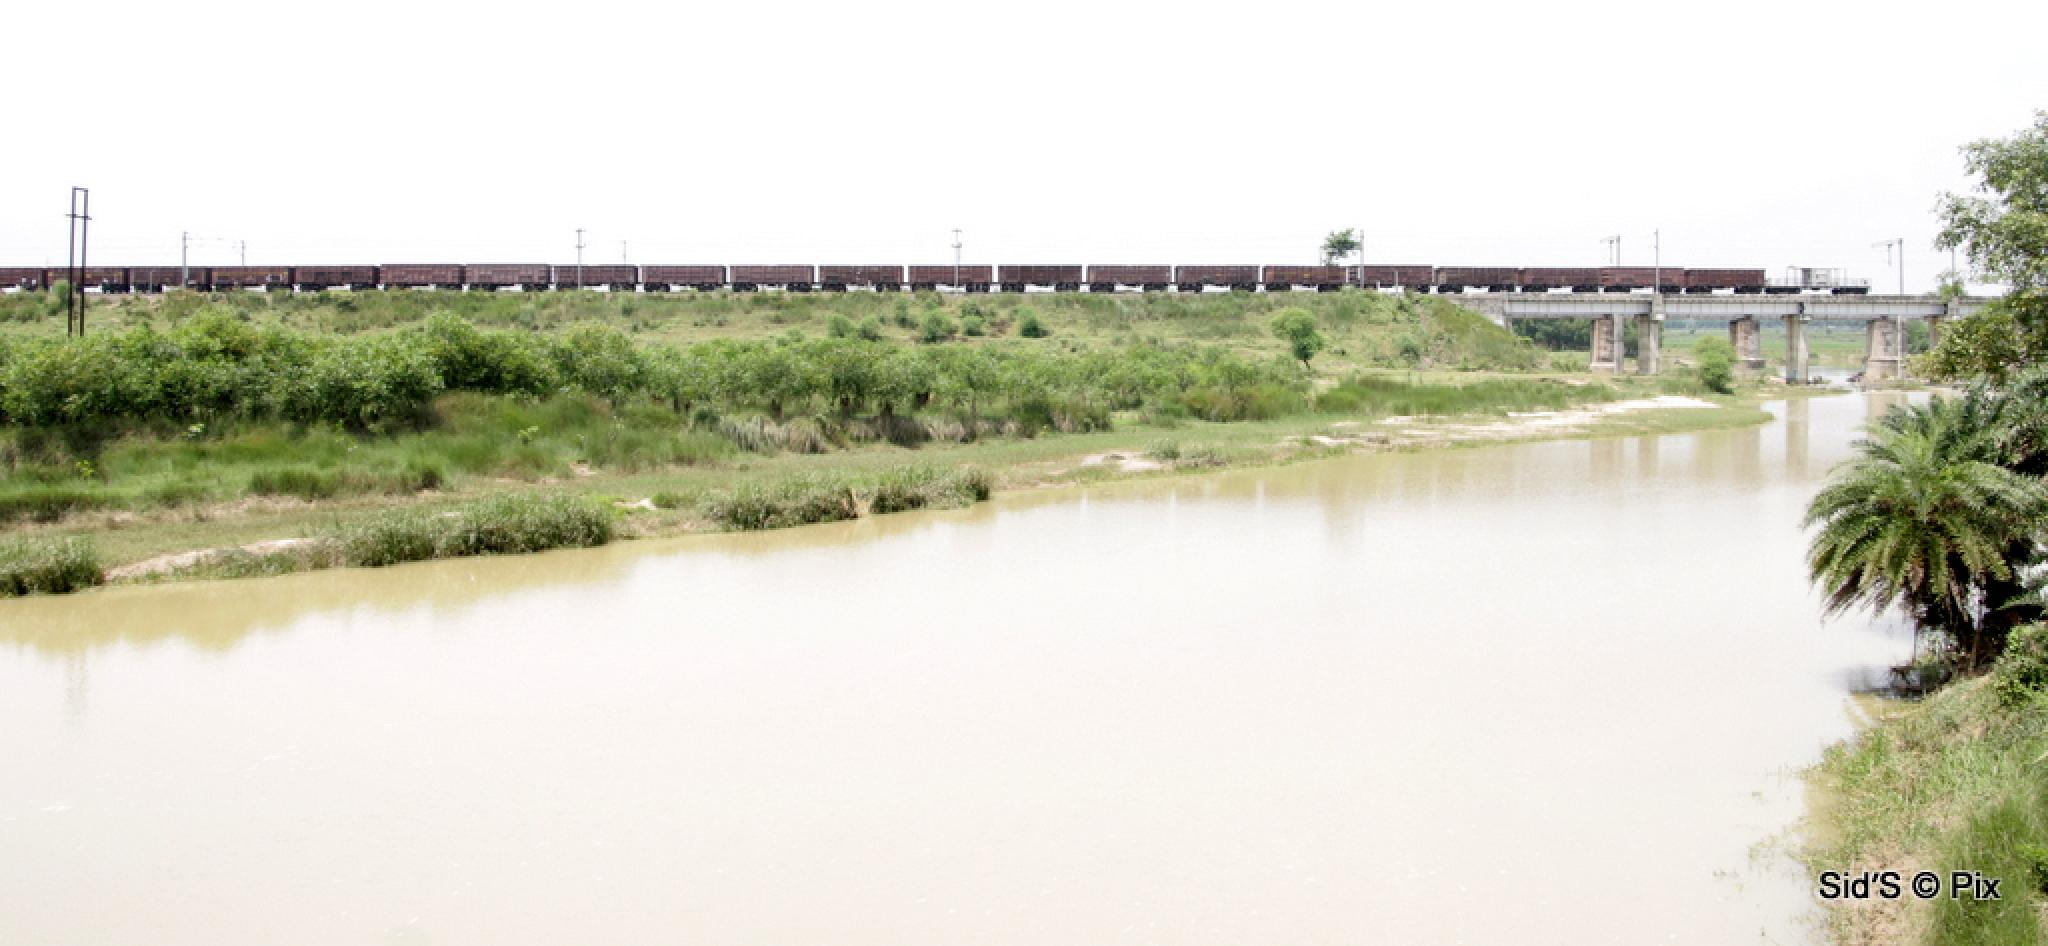 A goods train crossing the river by Siddharth Sanyal